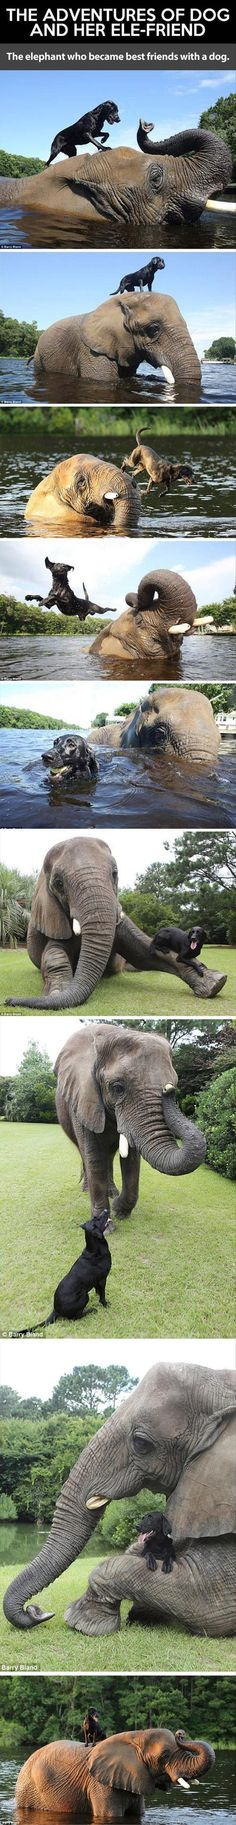 A dog and his elephant. You can't make this stuff up.